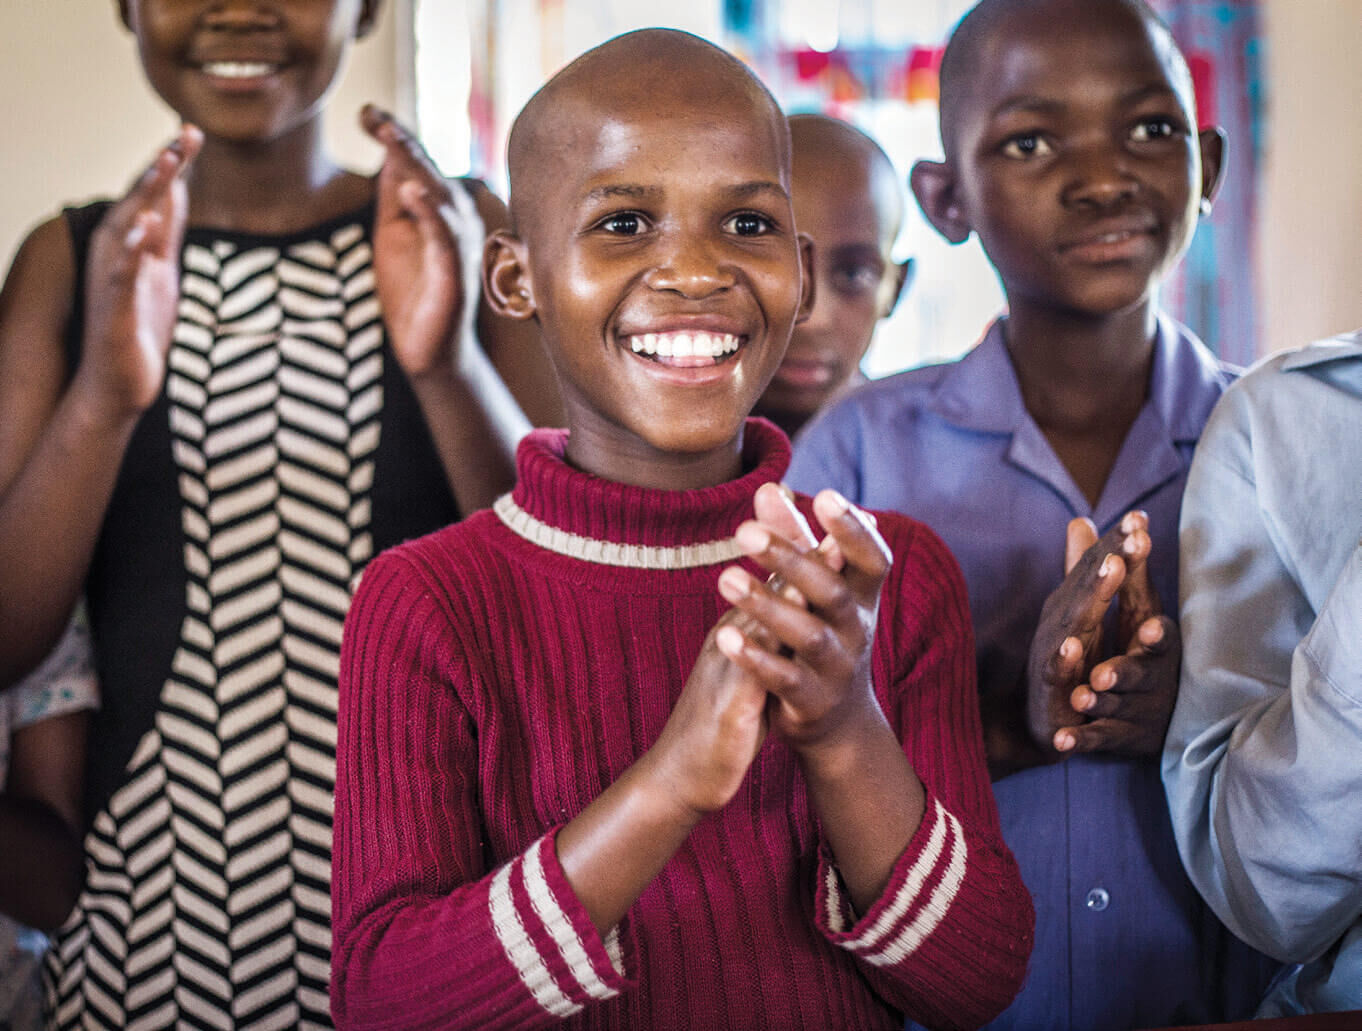 Tsepo FACET Foundation Young children at the Graff Leadership Centre learning as they play